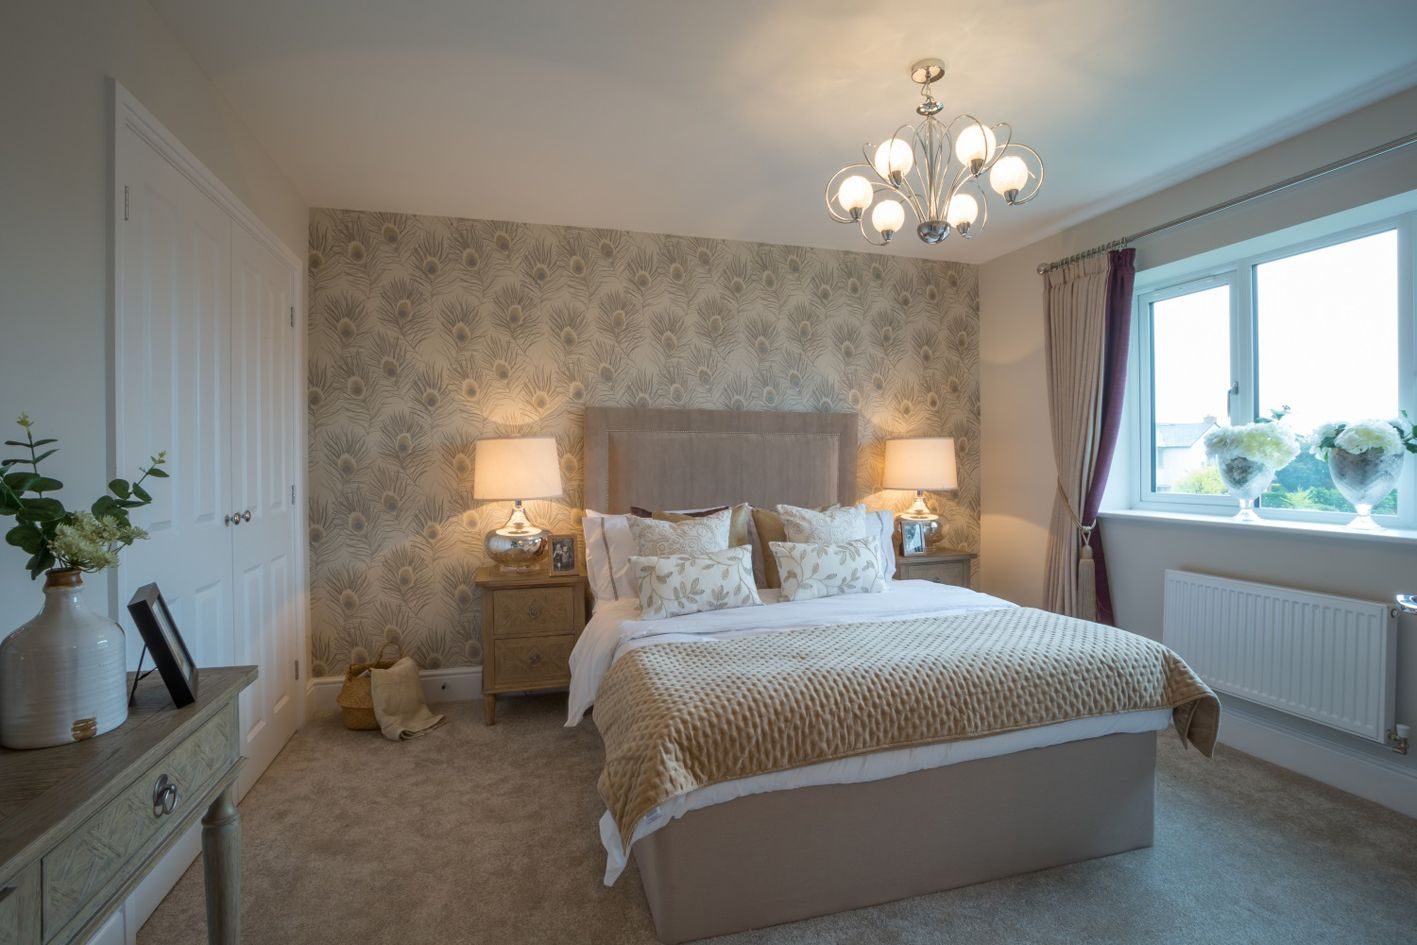 4 Bedroom Detached House For Sale - Photograph 7